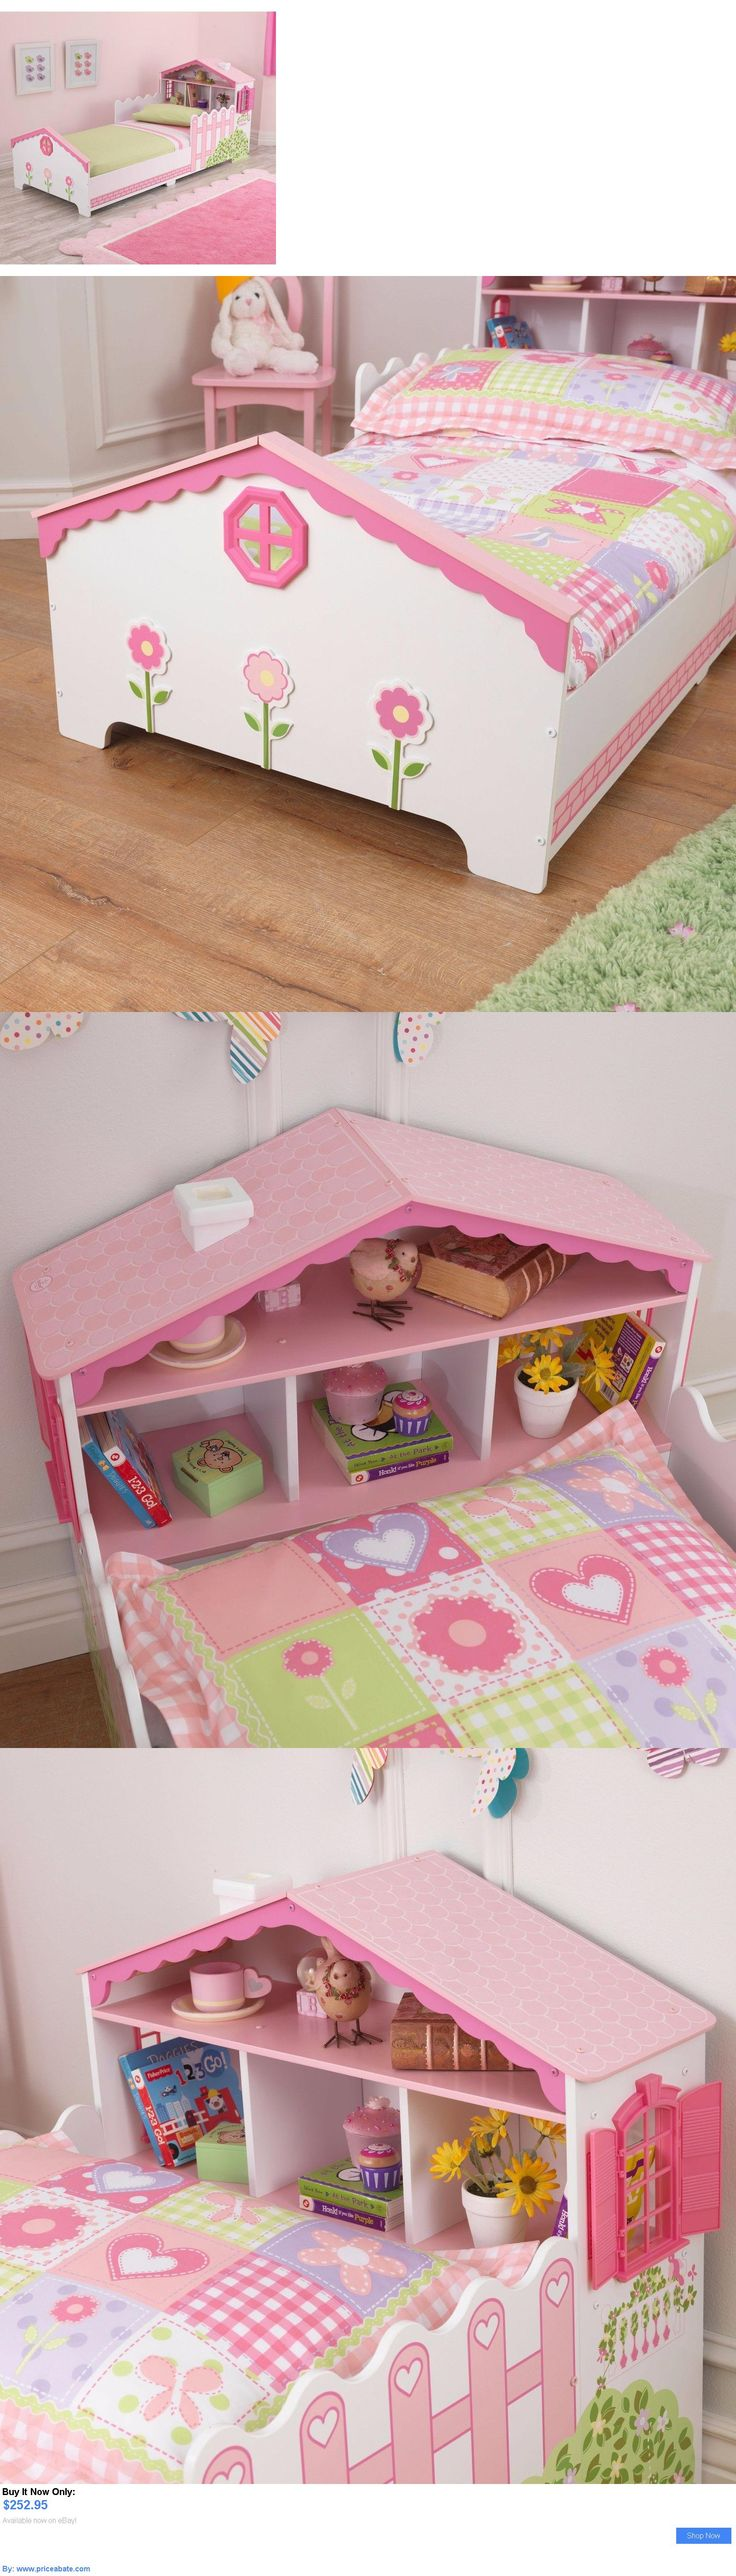 Kids At Home: Toddler Bed With Rails Pink White Dollhouse Girls Bedroom  Furniture Home Kids